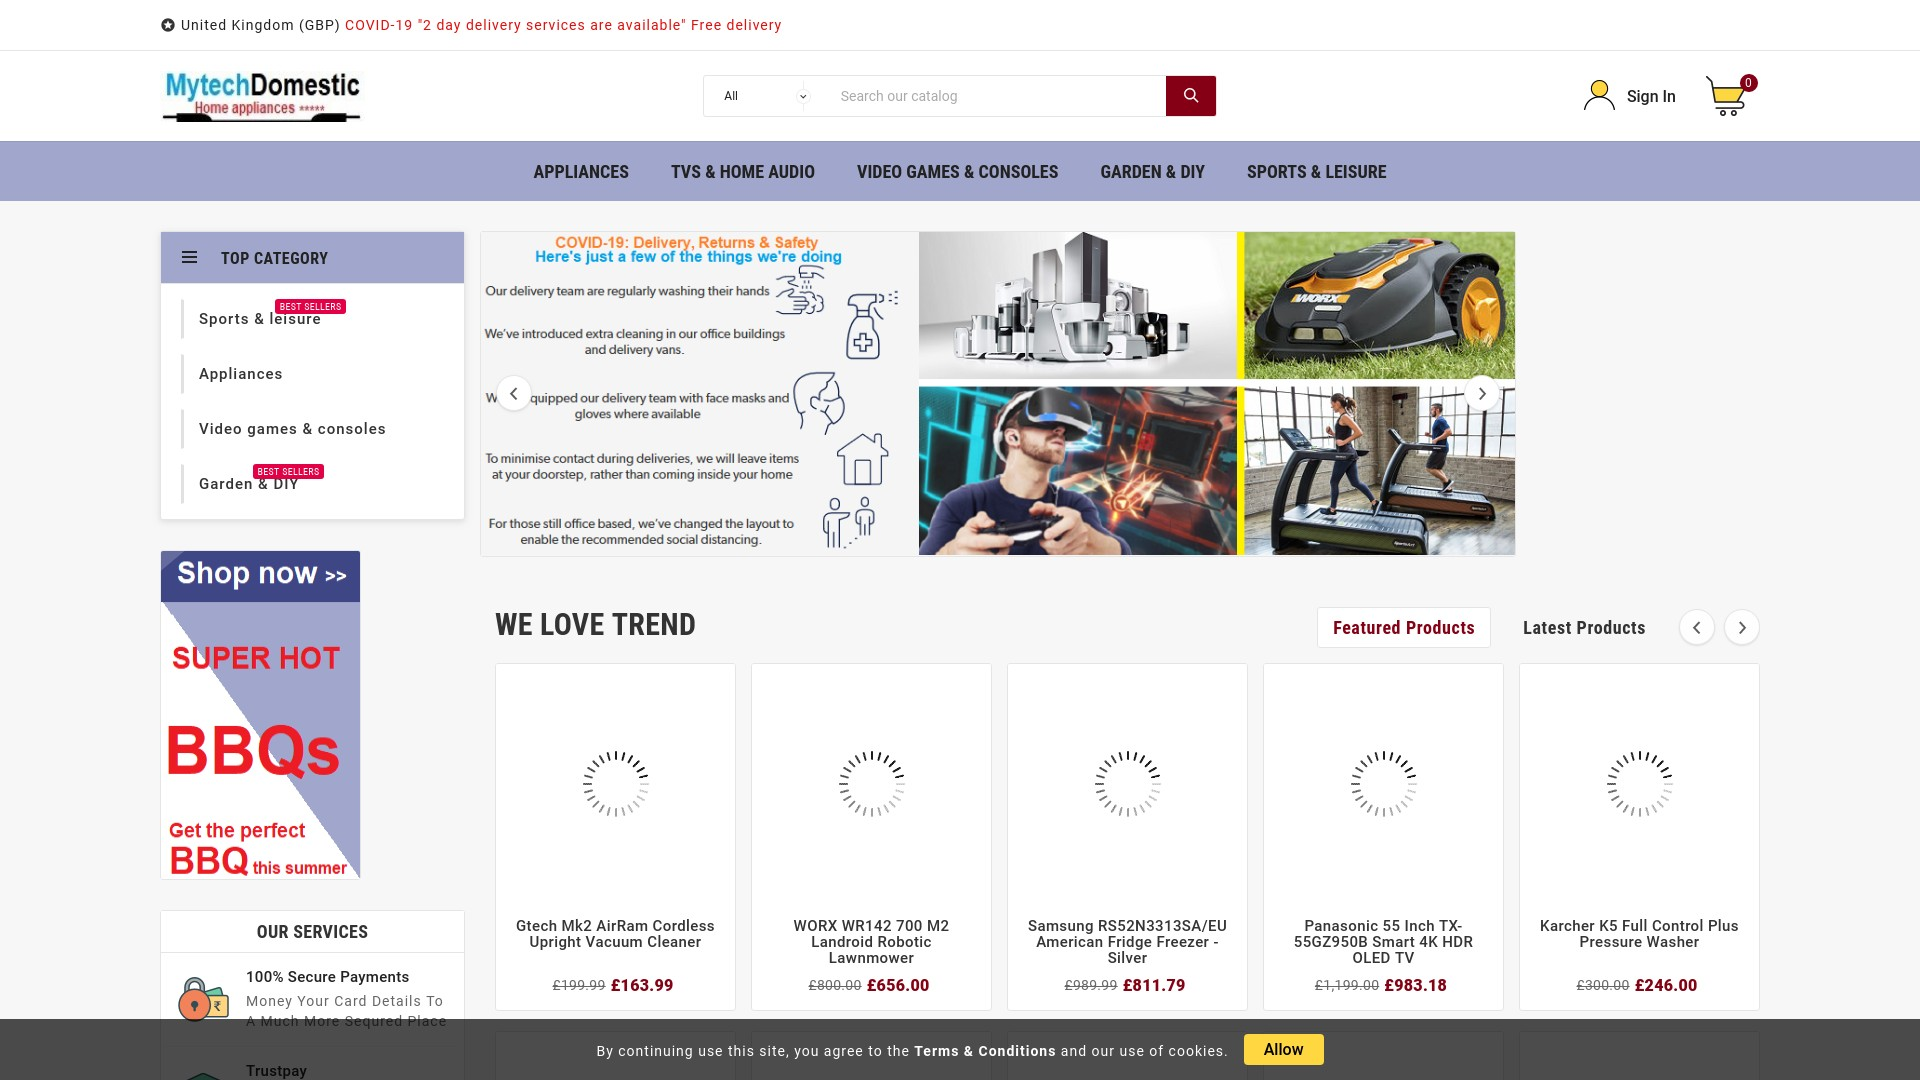 Is Mytech Domestic a Scam? Review of the Online Store